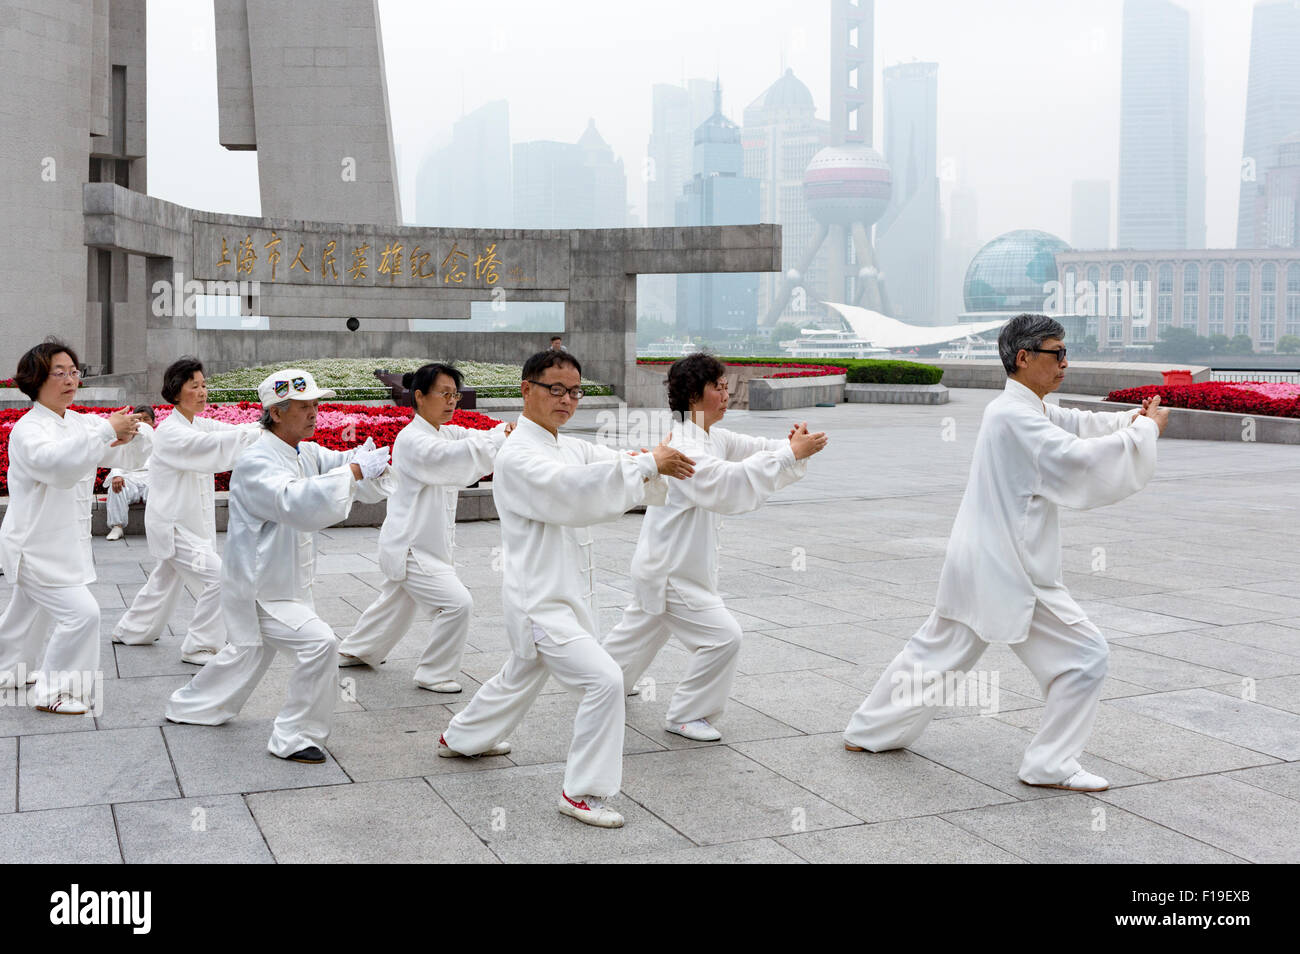 Tai Chi group in matching gear exercises near Shanghai's Bund in view of the Pudong skyline, which is obscured - Stock Image